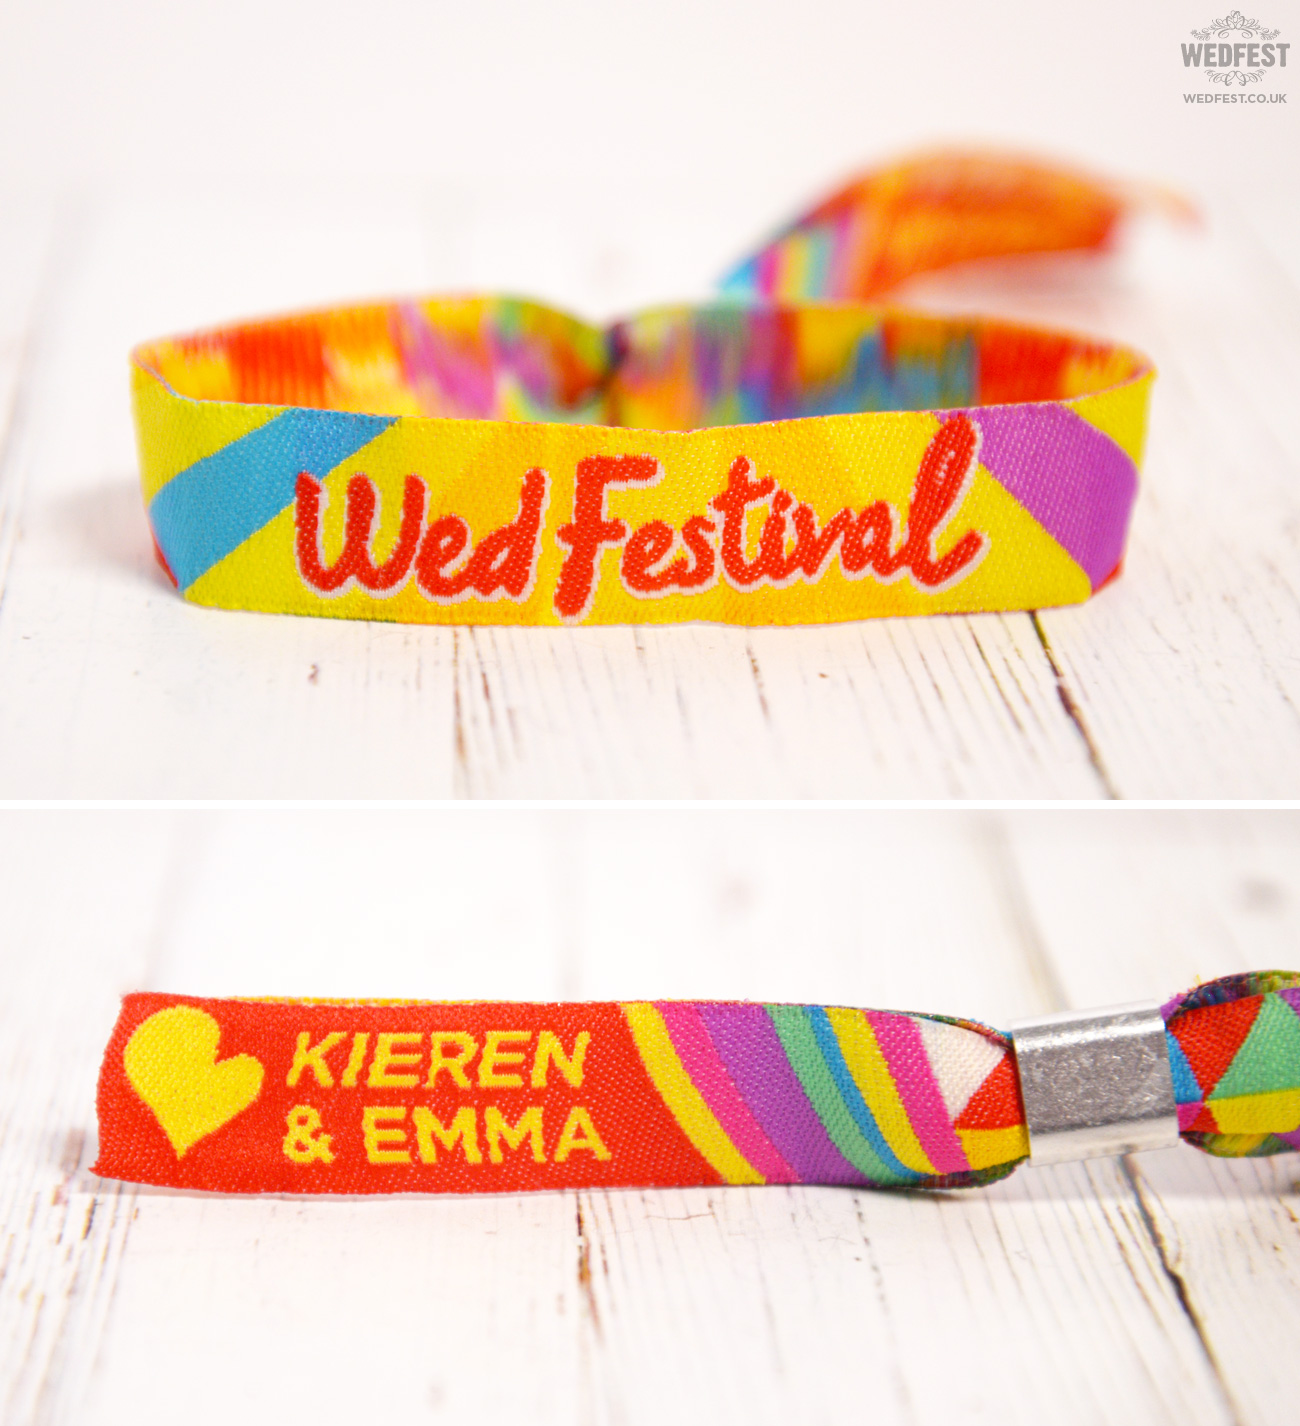 wed festival wedfest wedding wristbands